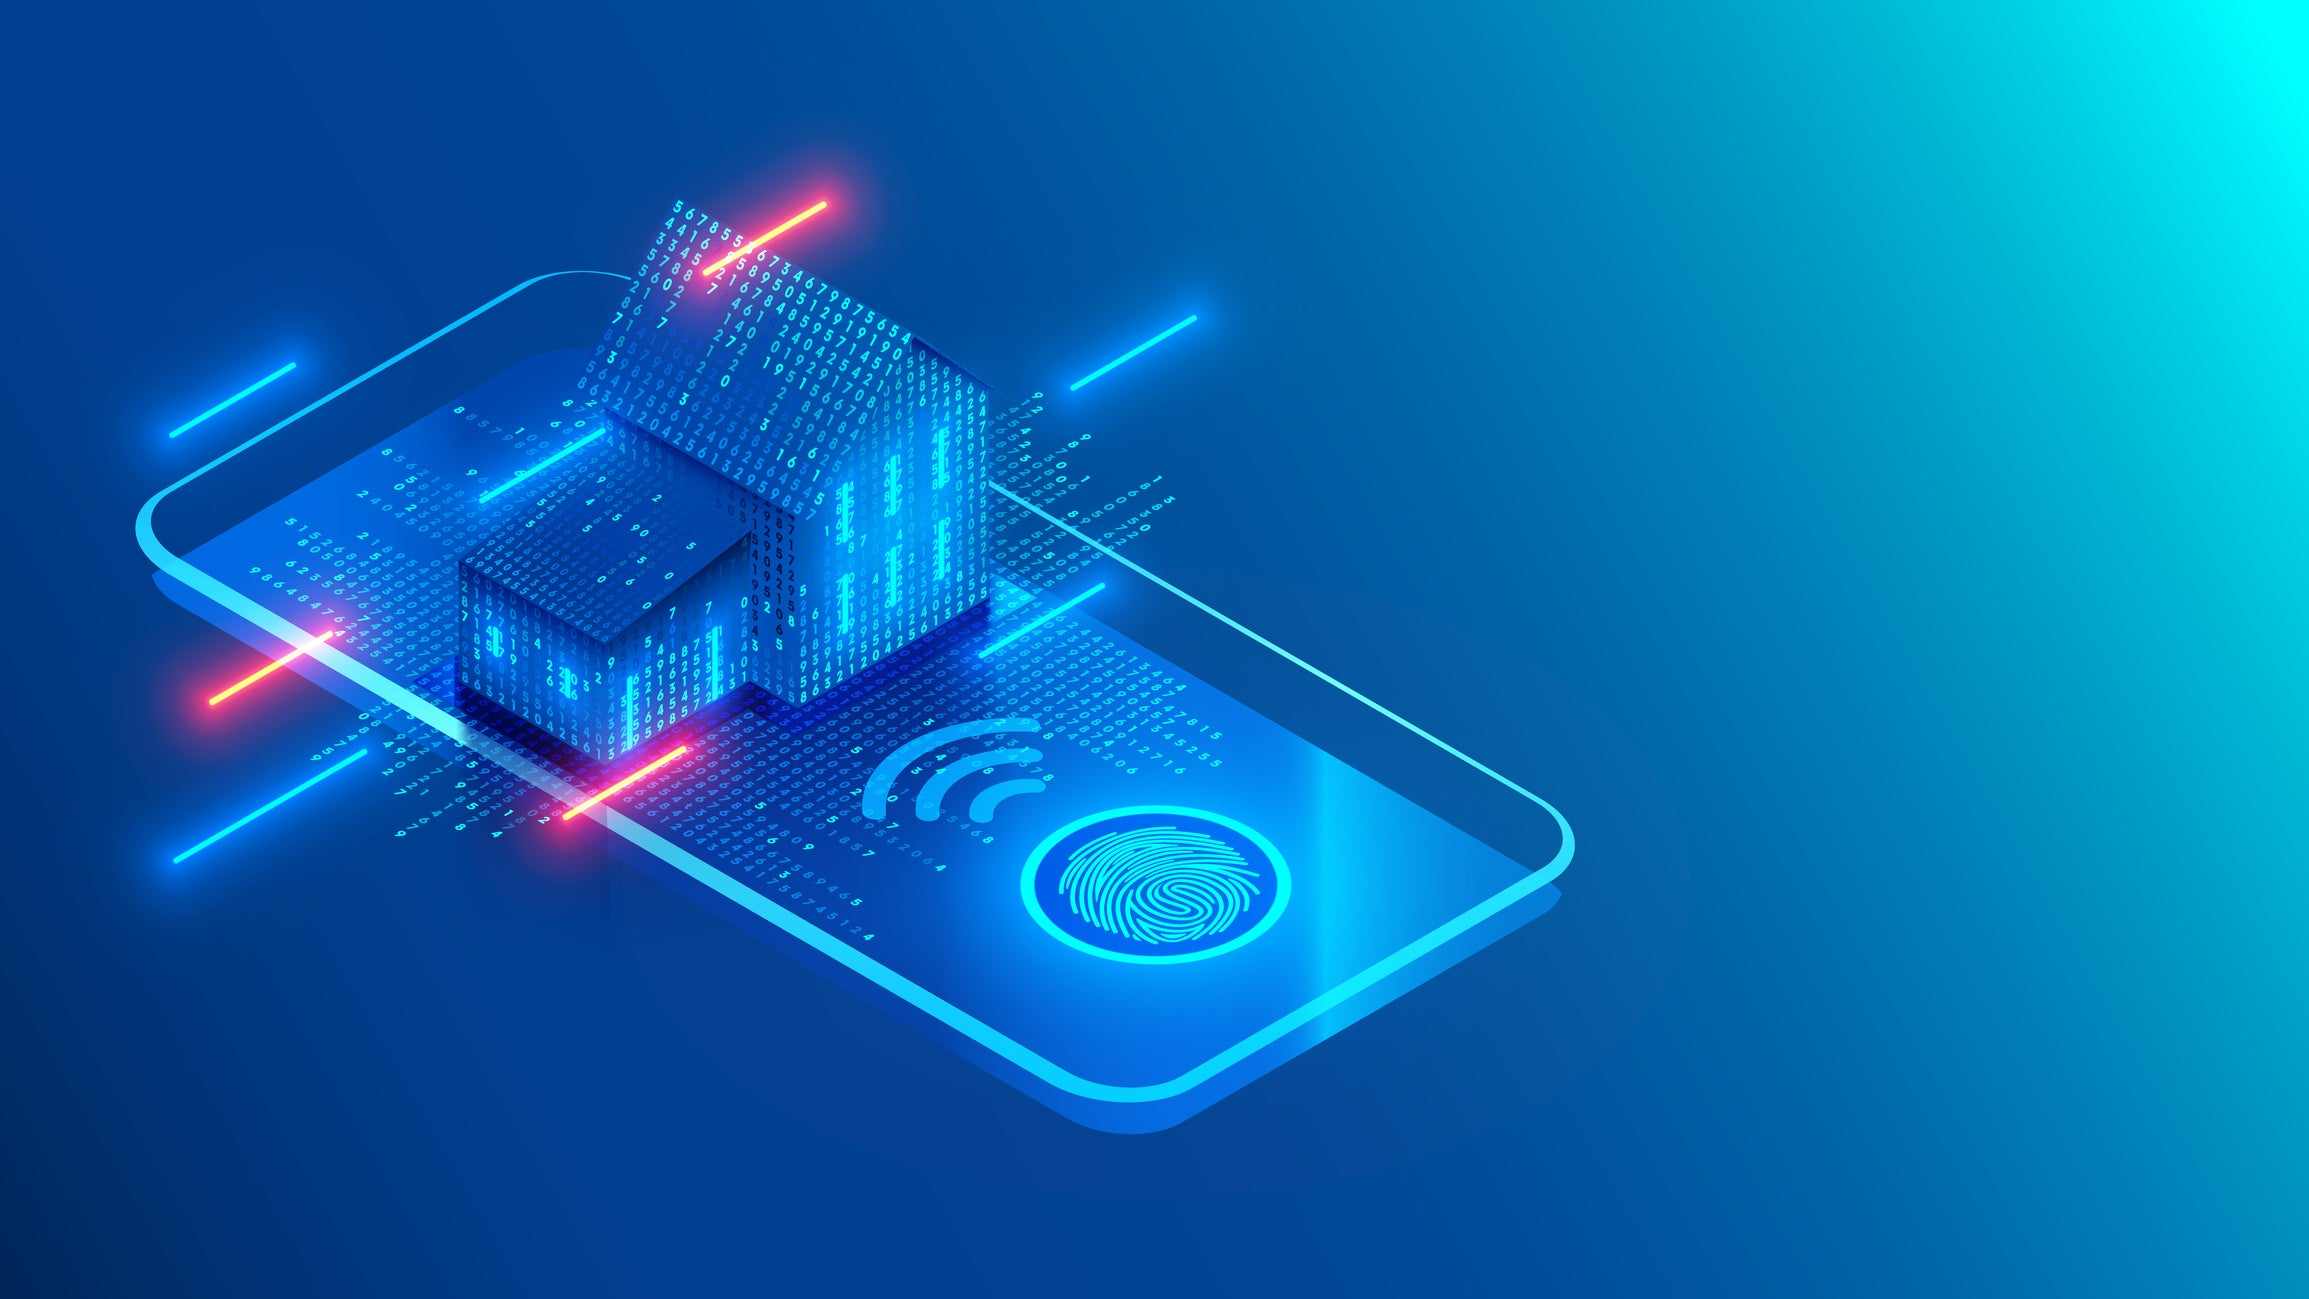 Could WiFi 6E Make Your Home Safer?